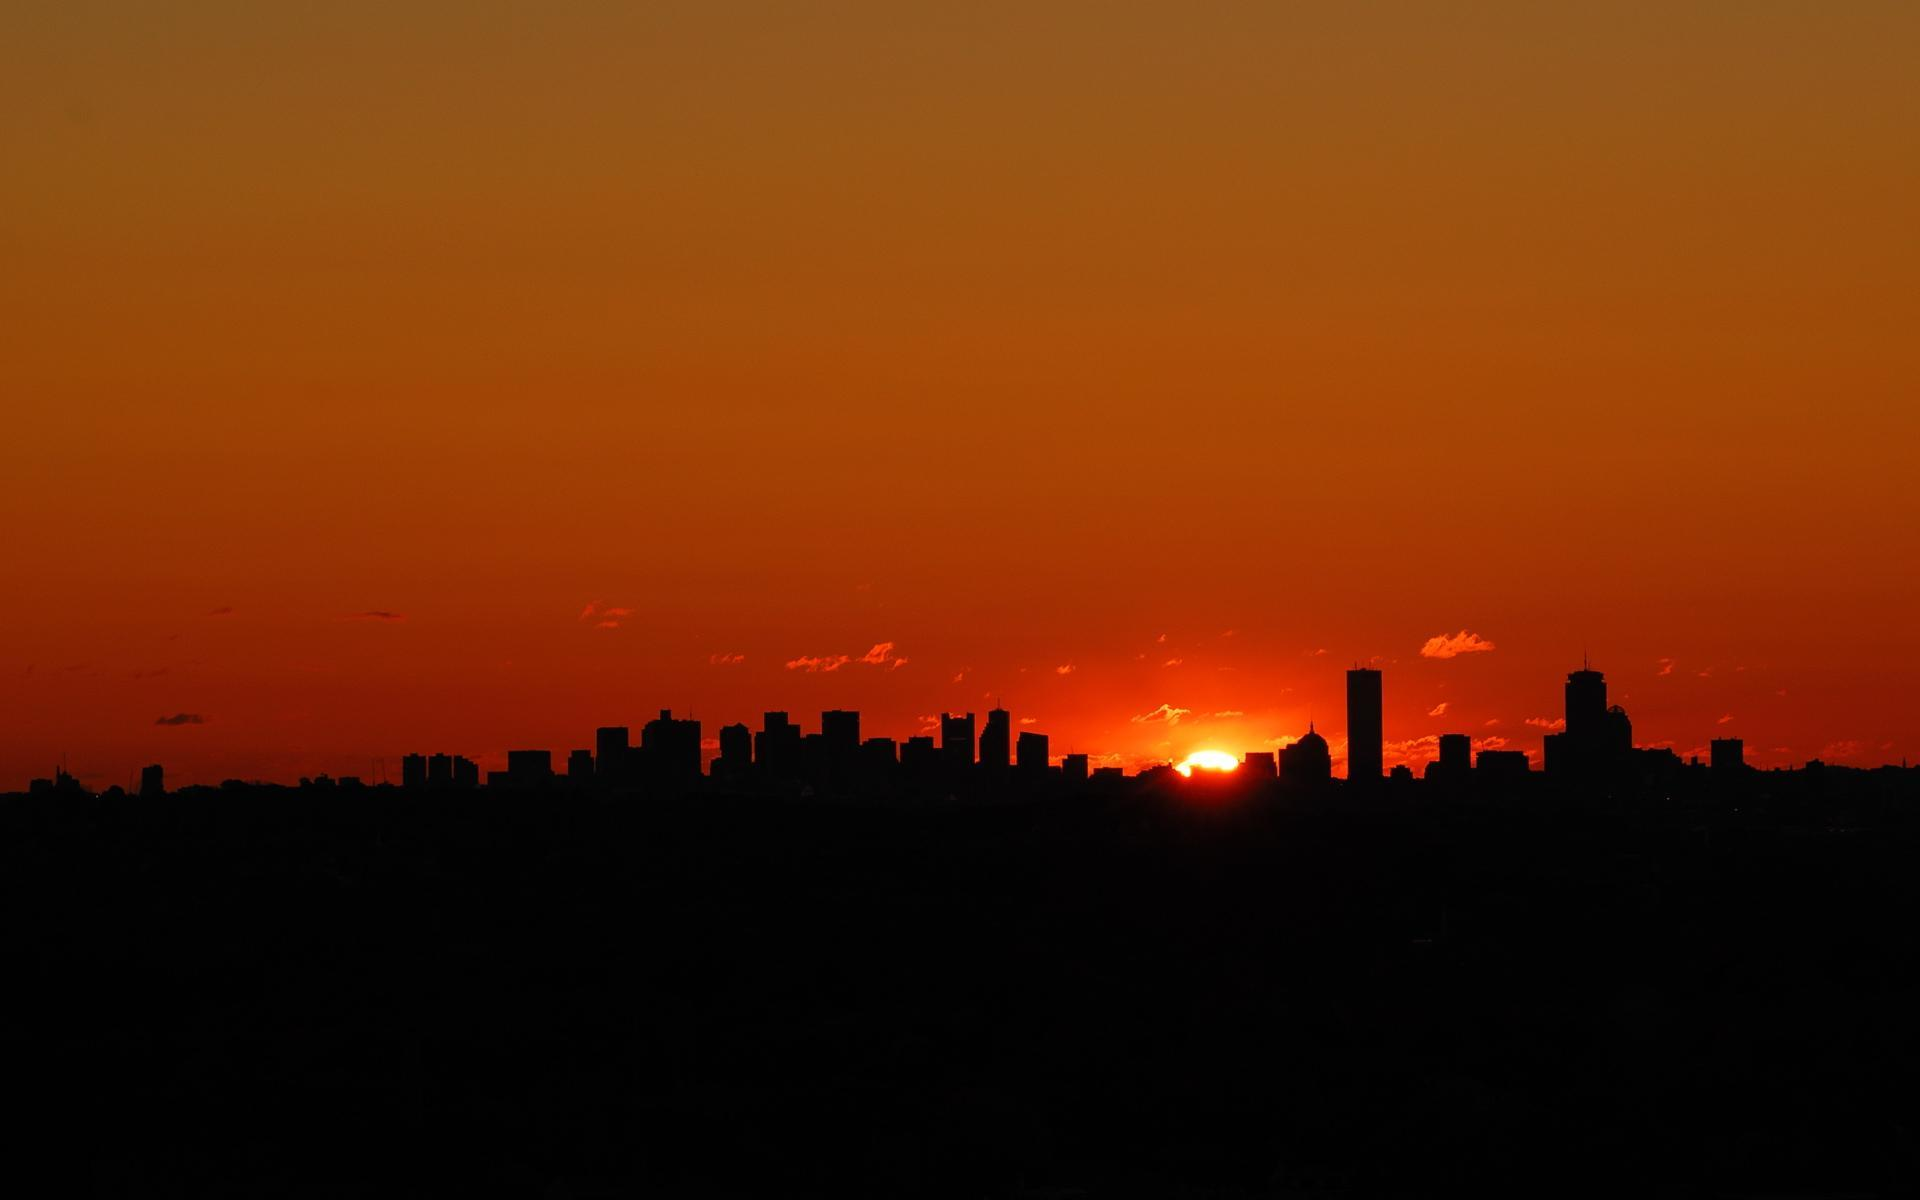 Sunset City Live Wallpaper For Android Apk Download